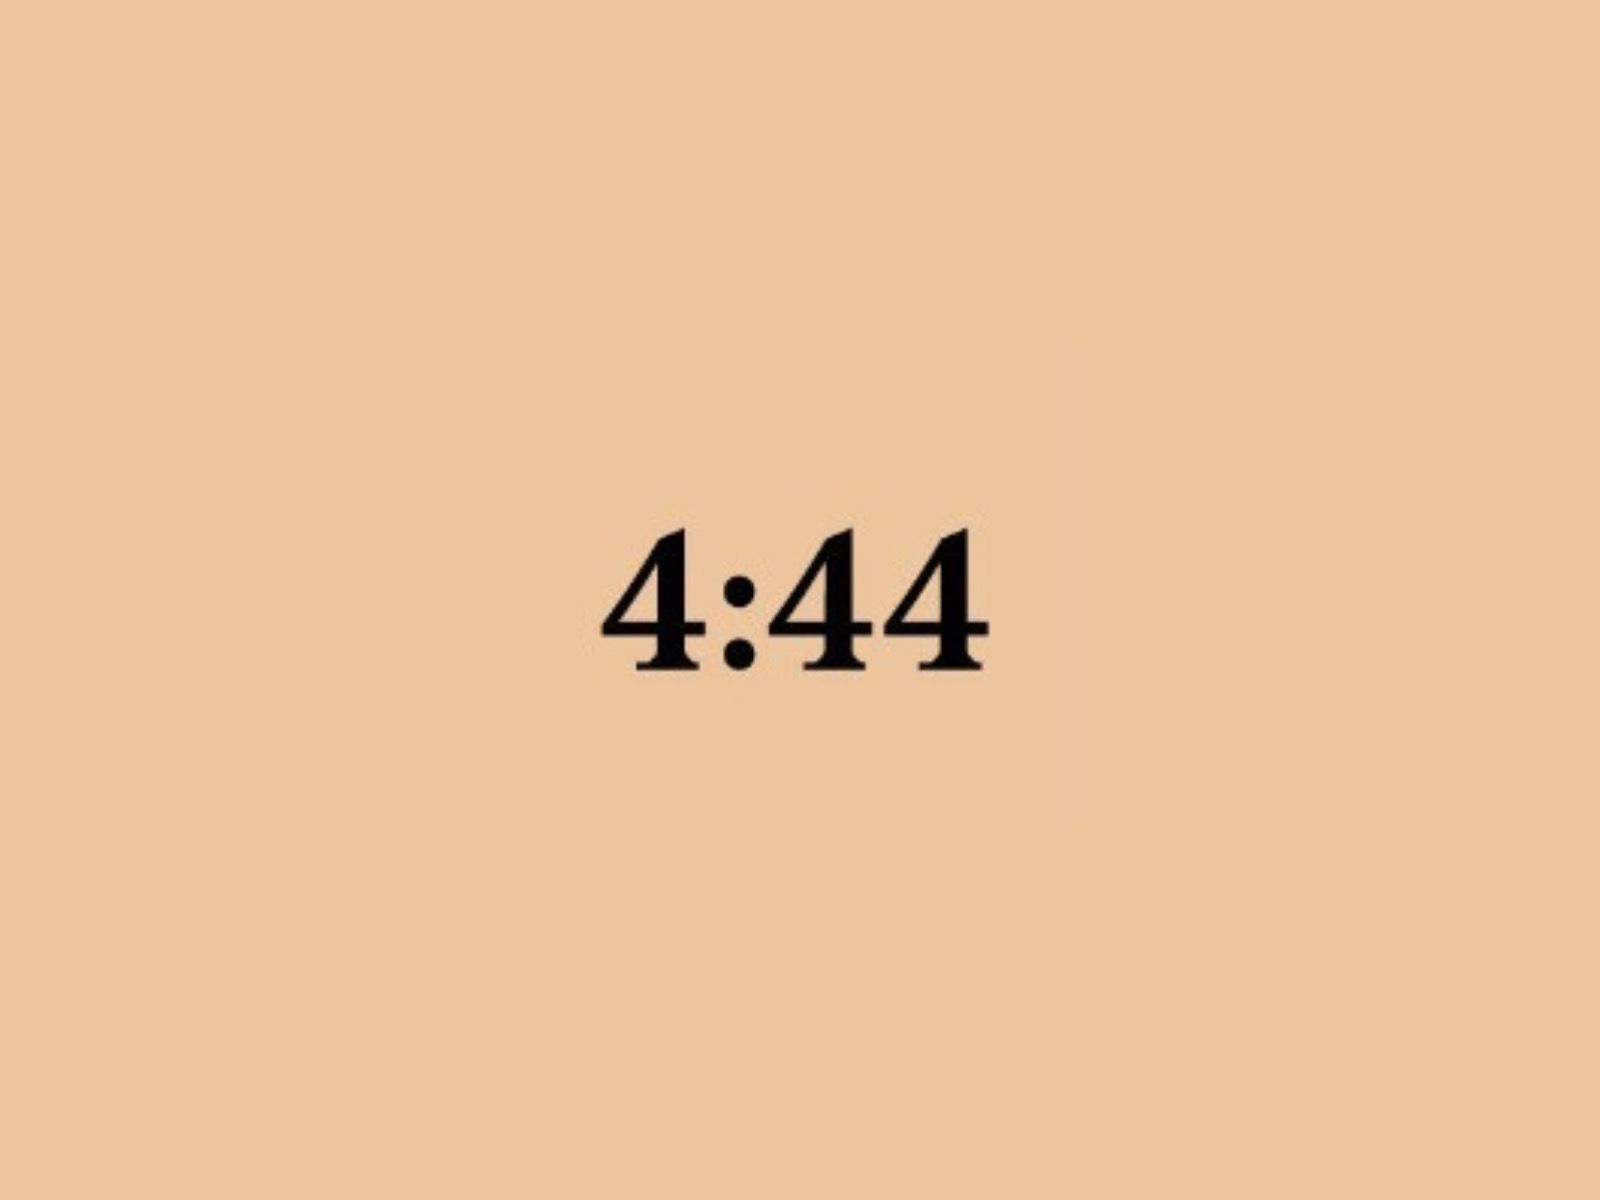 Nbsp jay z 444 new album teasers june 28th 2017 jay z nbsp jay z 444 new album teasers june 28th 2017 malvernweather Choice Image